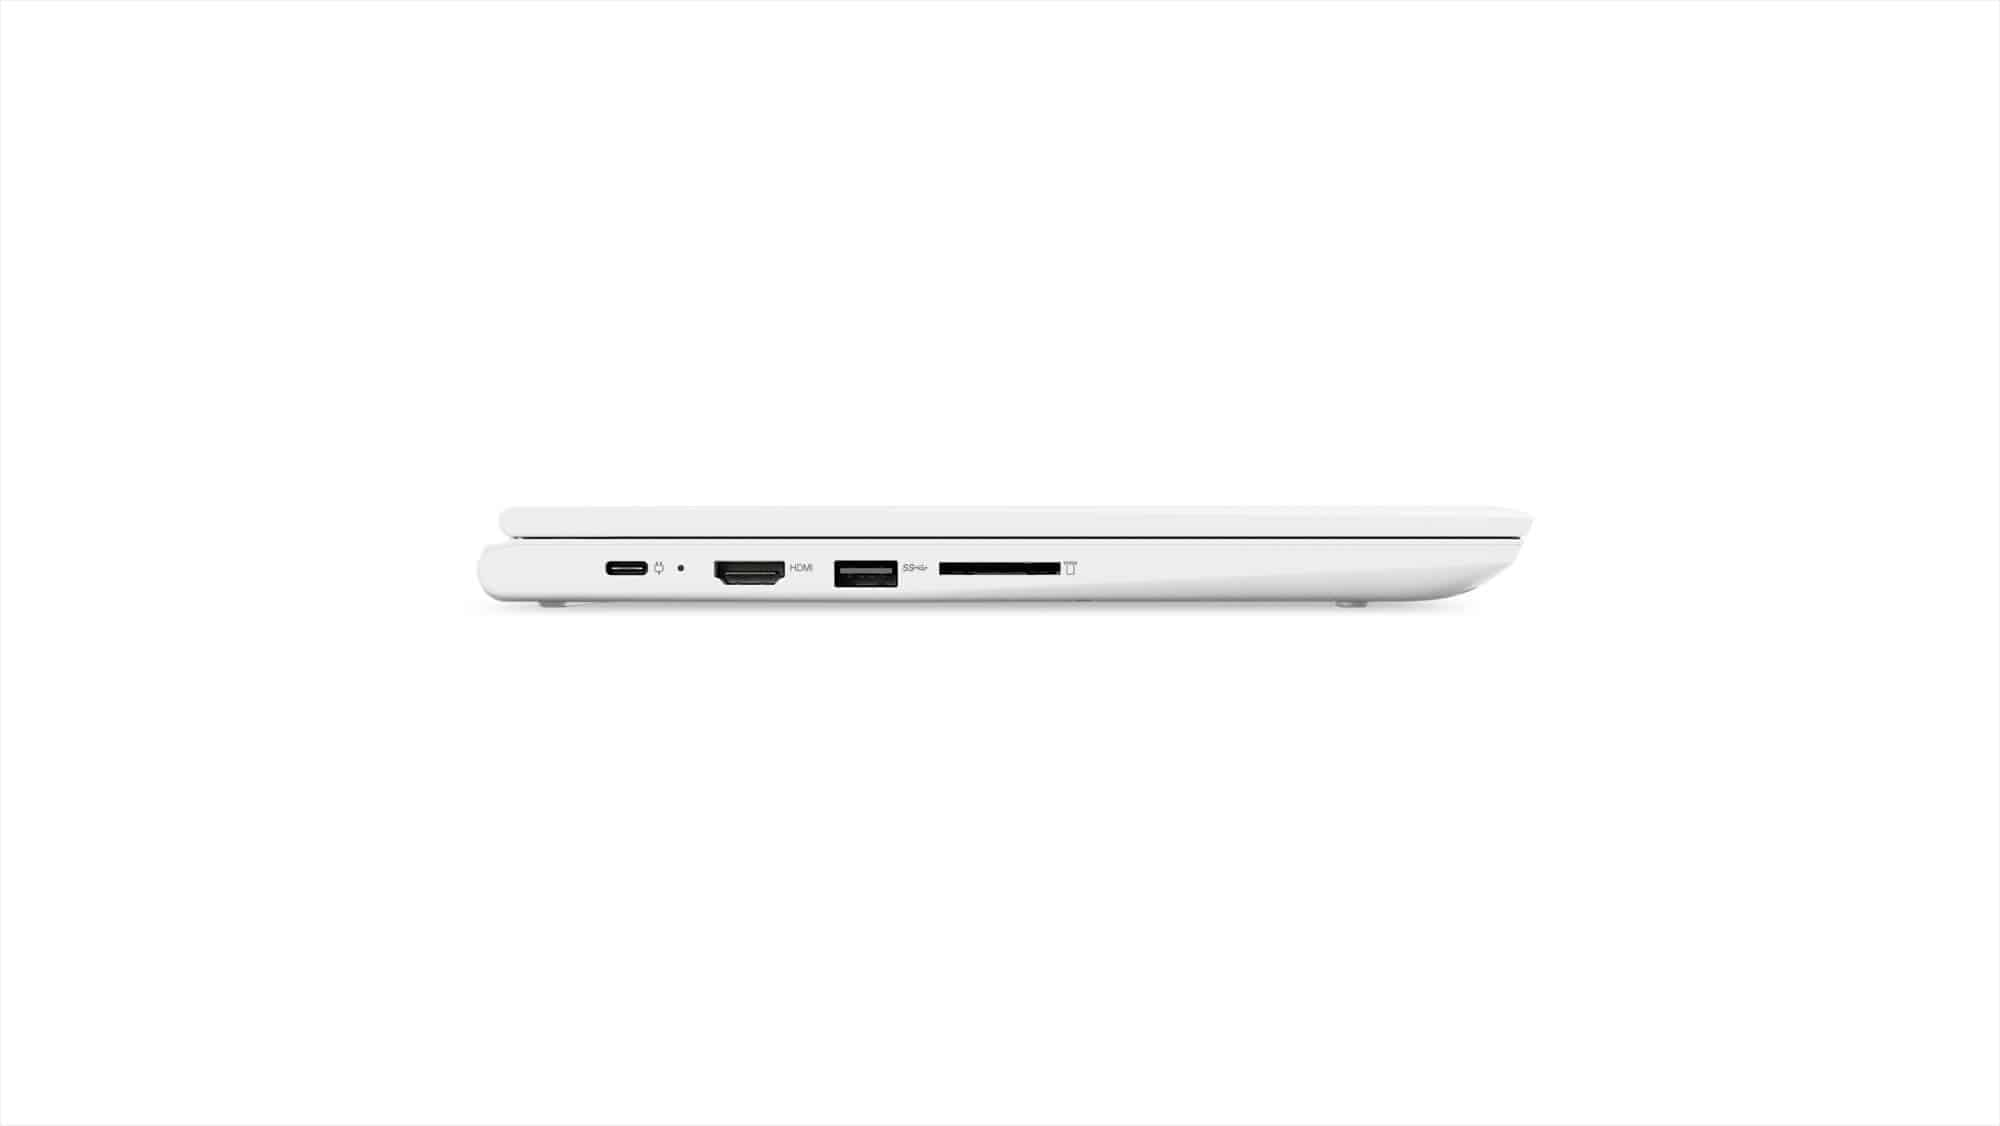 10 Chromebook C330 Tour Left Side Profile Closed Blizzard White